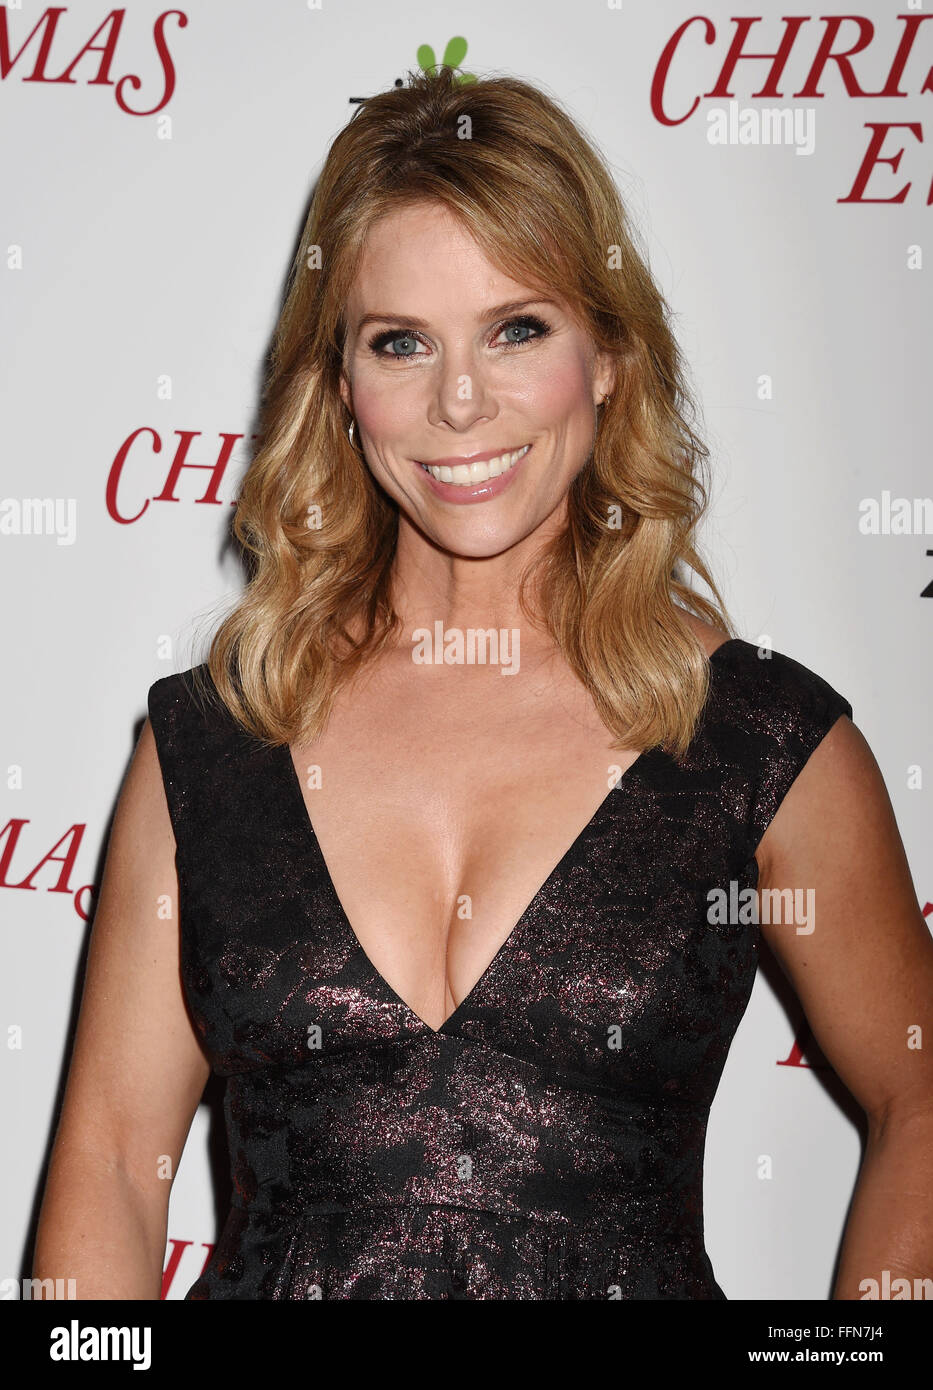 Actress Cheryl Hines arrives at the premiere of Unstuck's 'Christmas Eve' at the ArcLight Hollywood - Stock Image